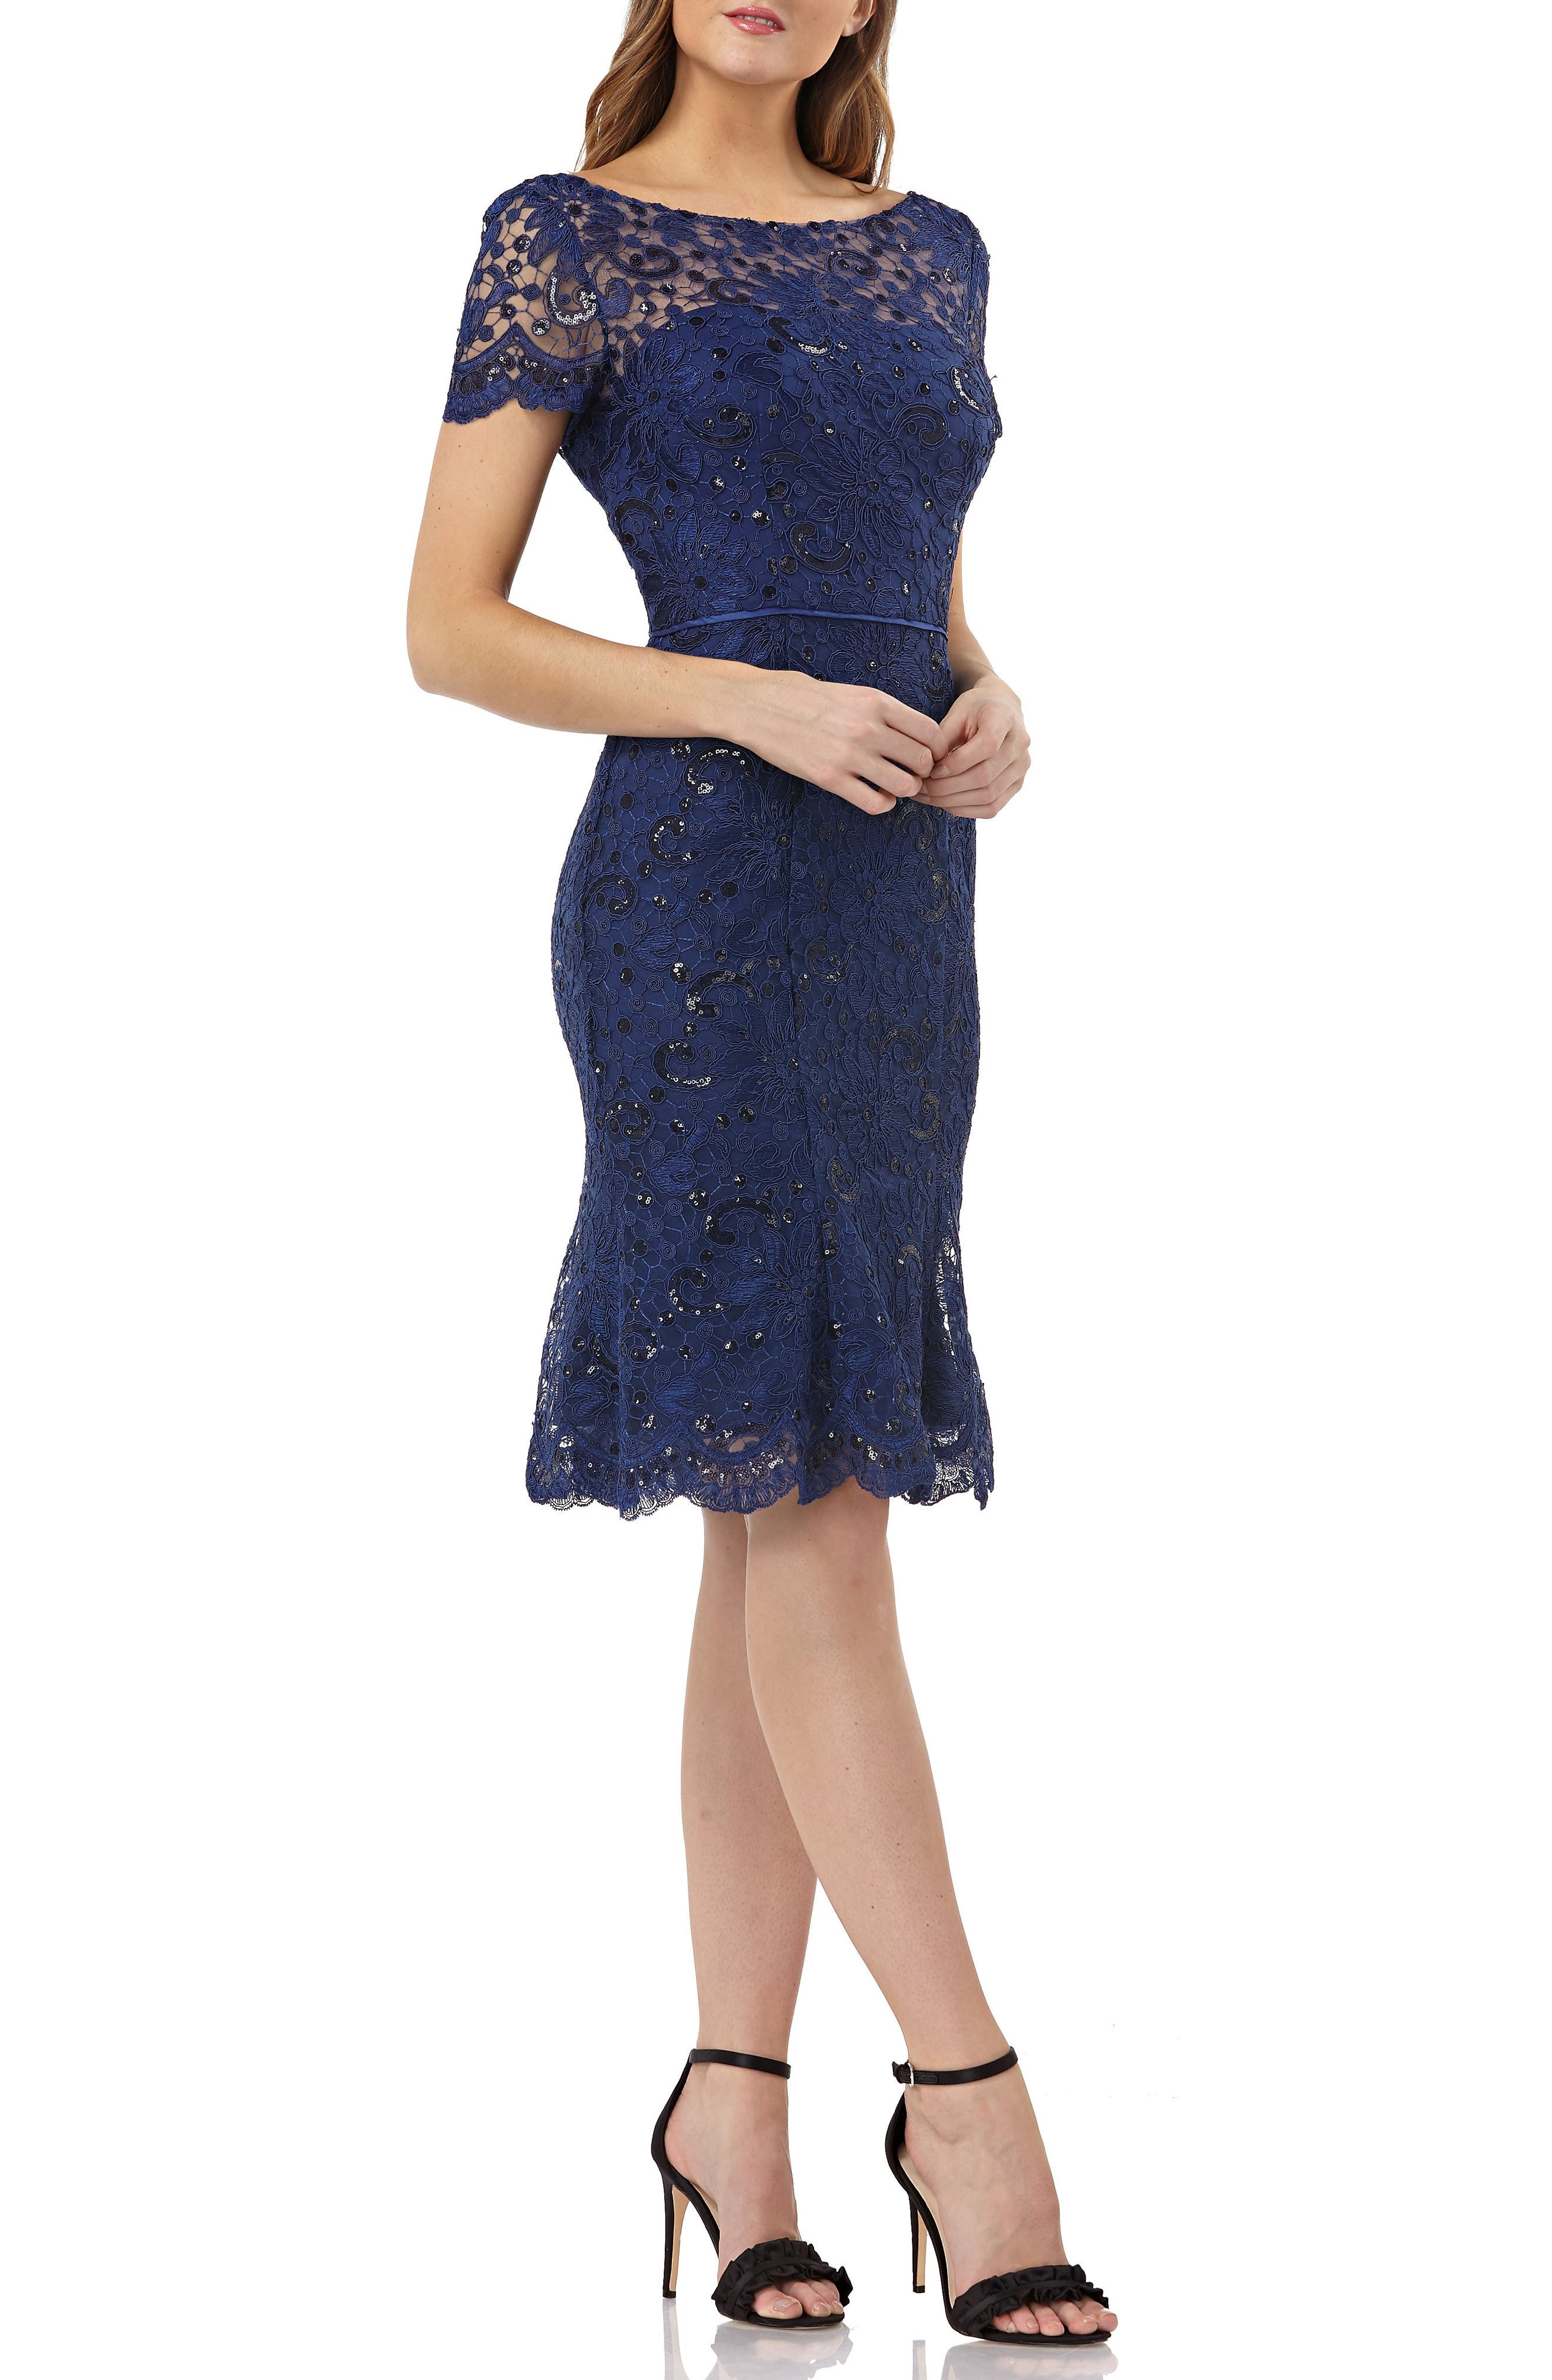 JS COLLECTIONS SEQUIN CORDED LACE COCKTAIL SHEATH